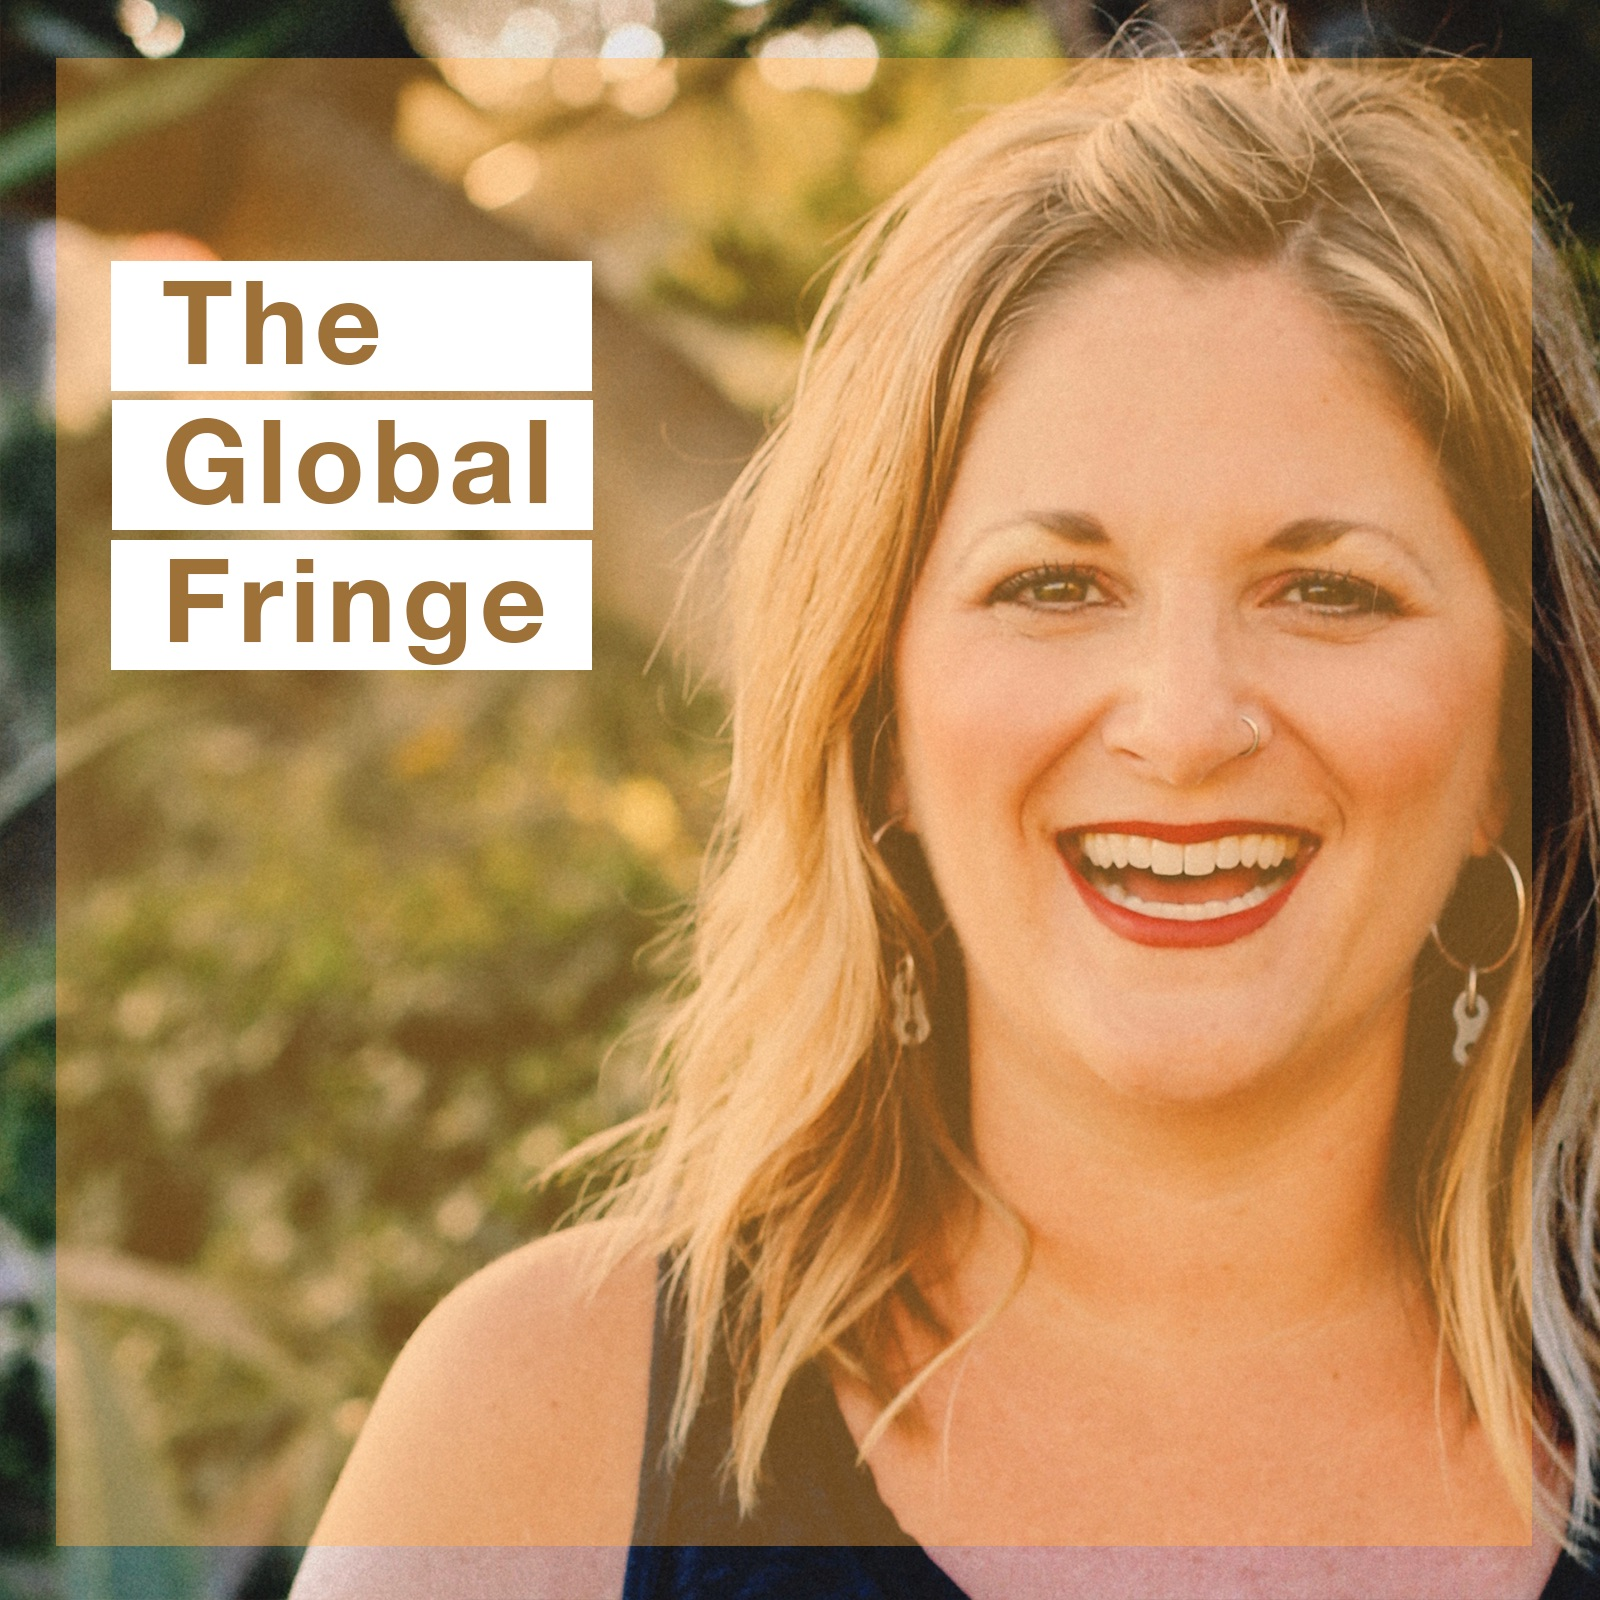 The Global Fringe podcast